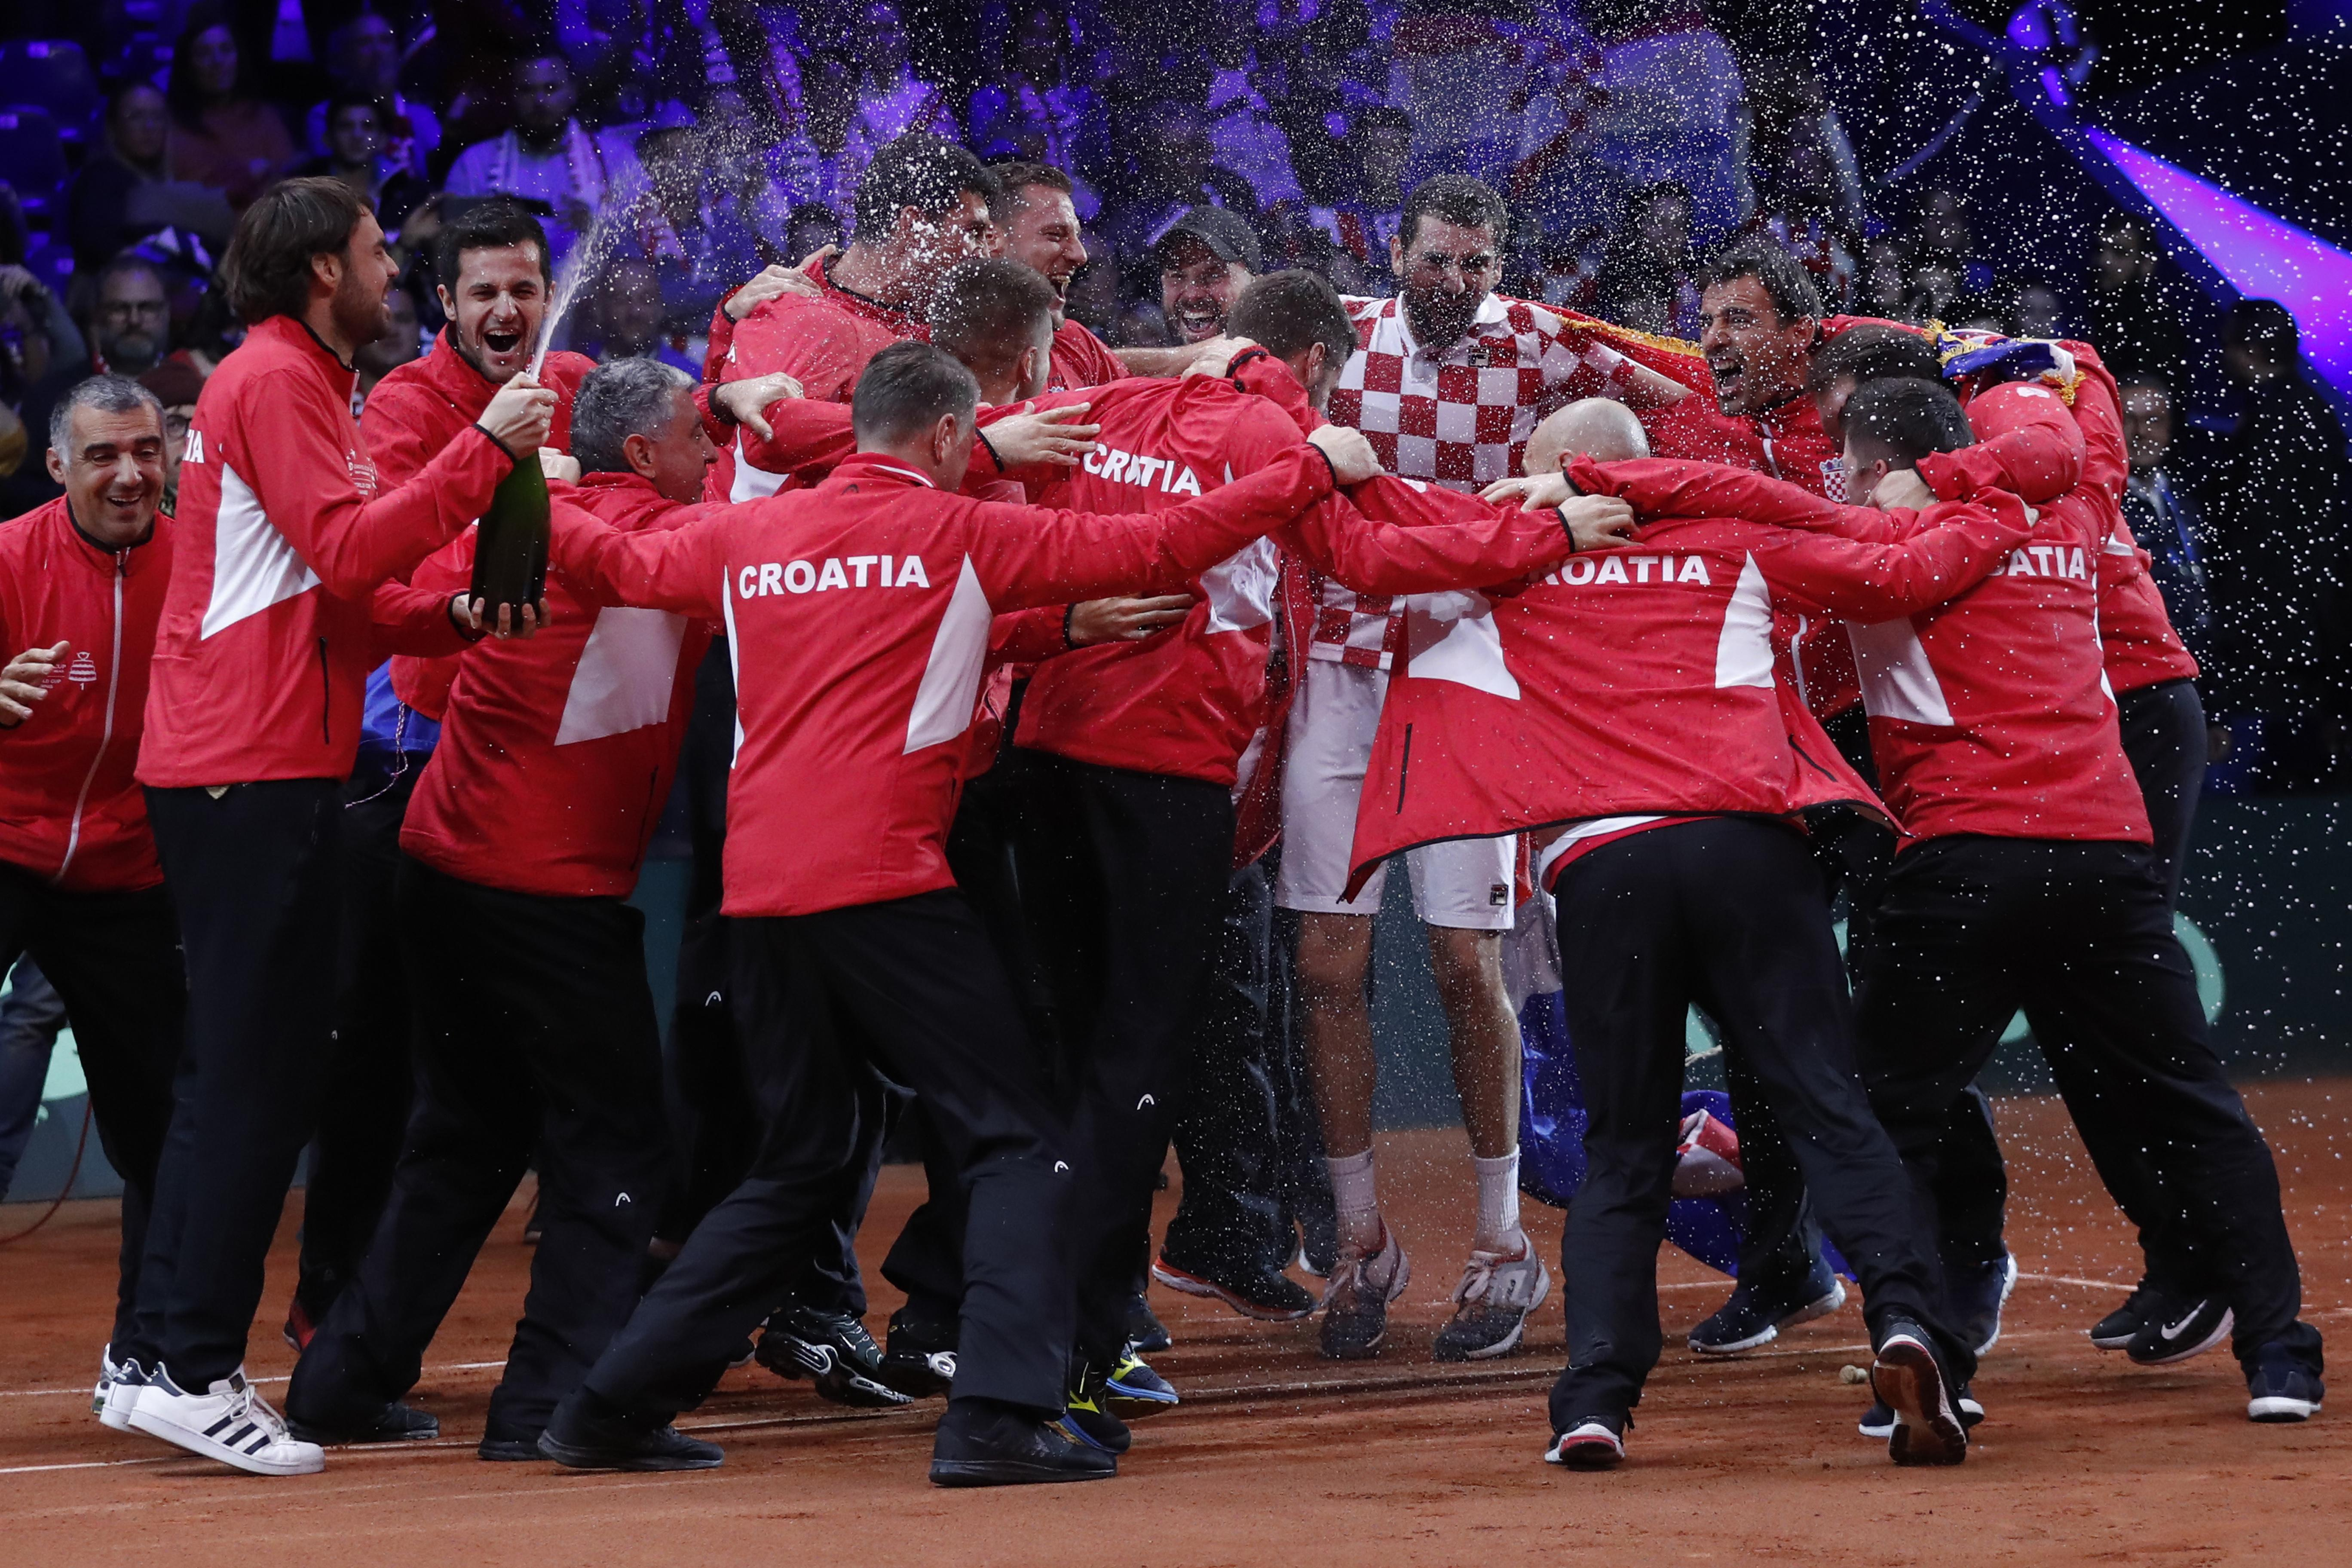 The Croatia team mobbed Cilic as he secured victory without dropping a single service game in six sets